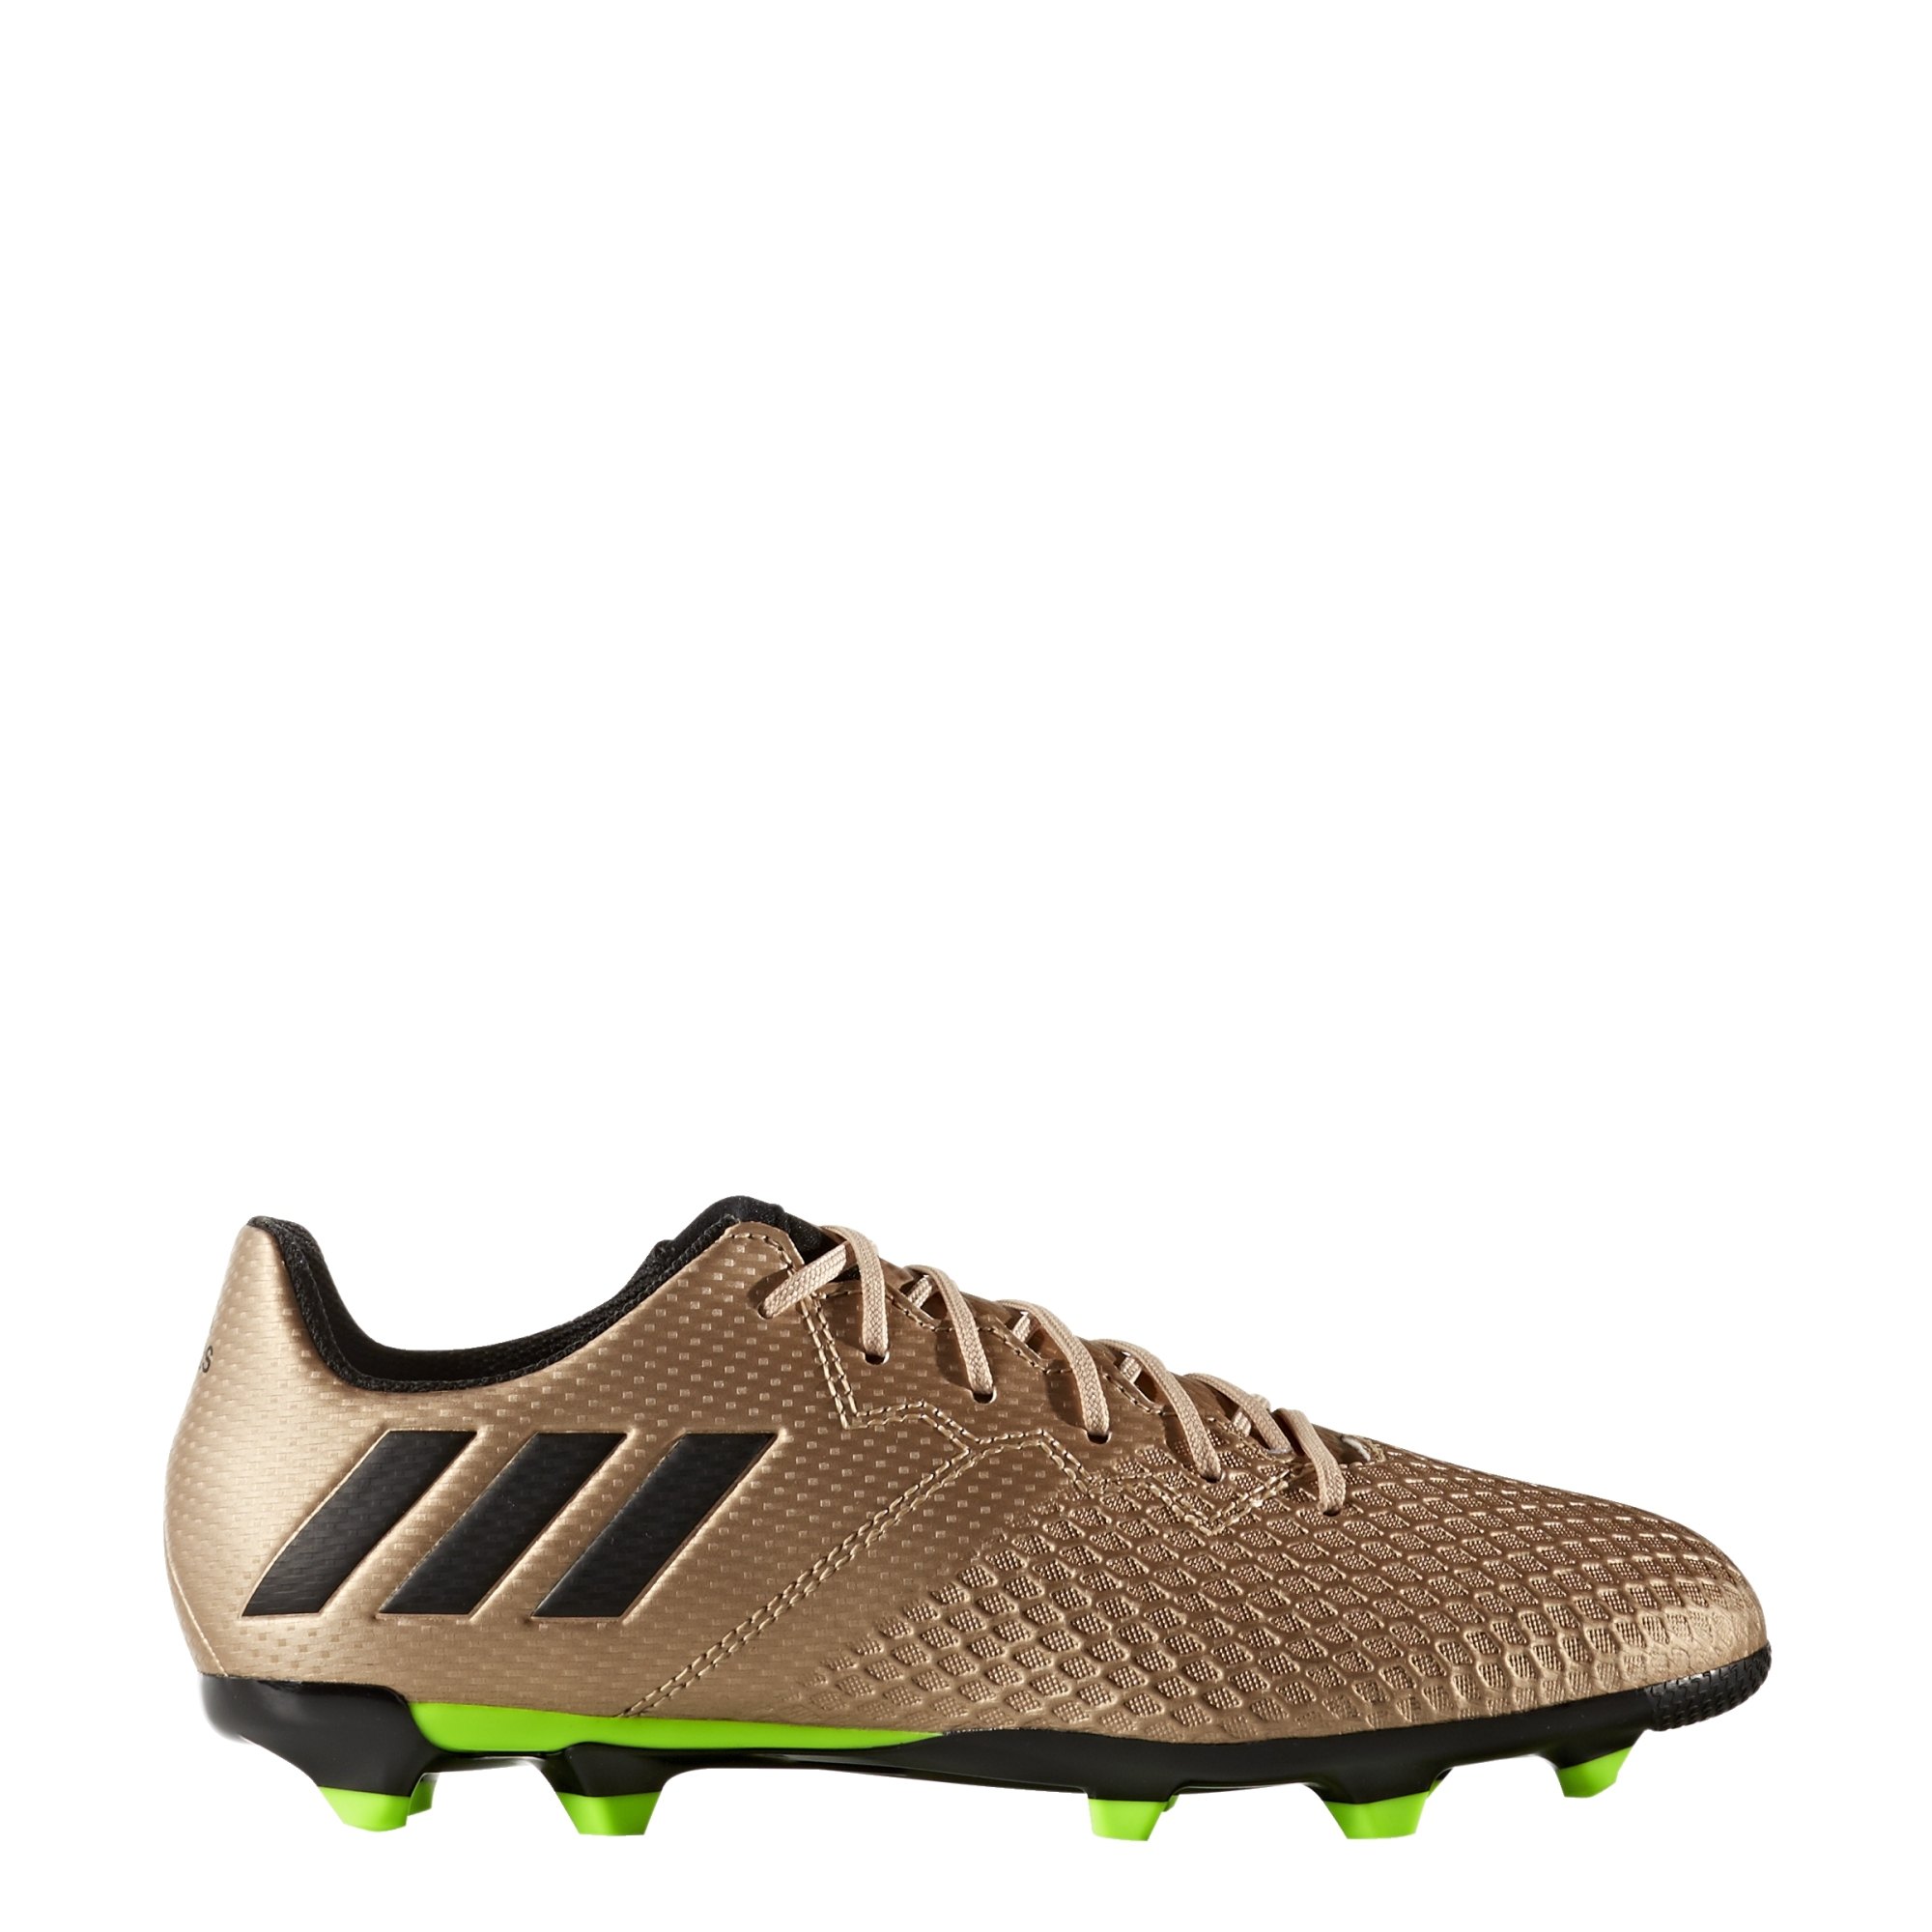 2a3e7de5131 ... slip it onSnug-fit mono-tongue construction keeps out turf material and  turns on explosive agilityMove with untouchable speed and agility on firm  ground ...